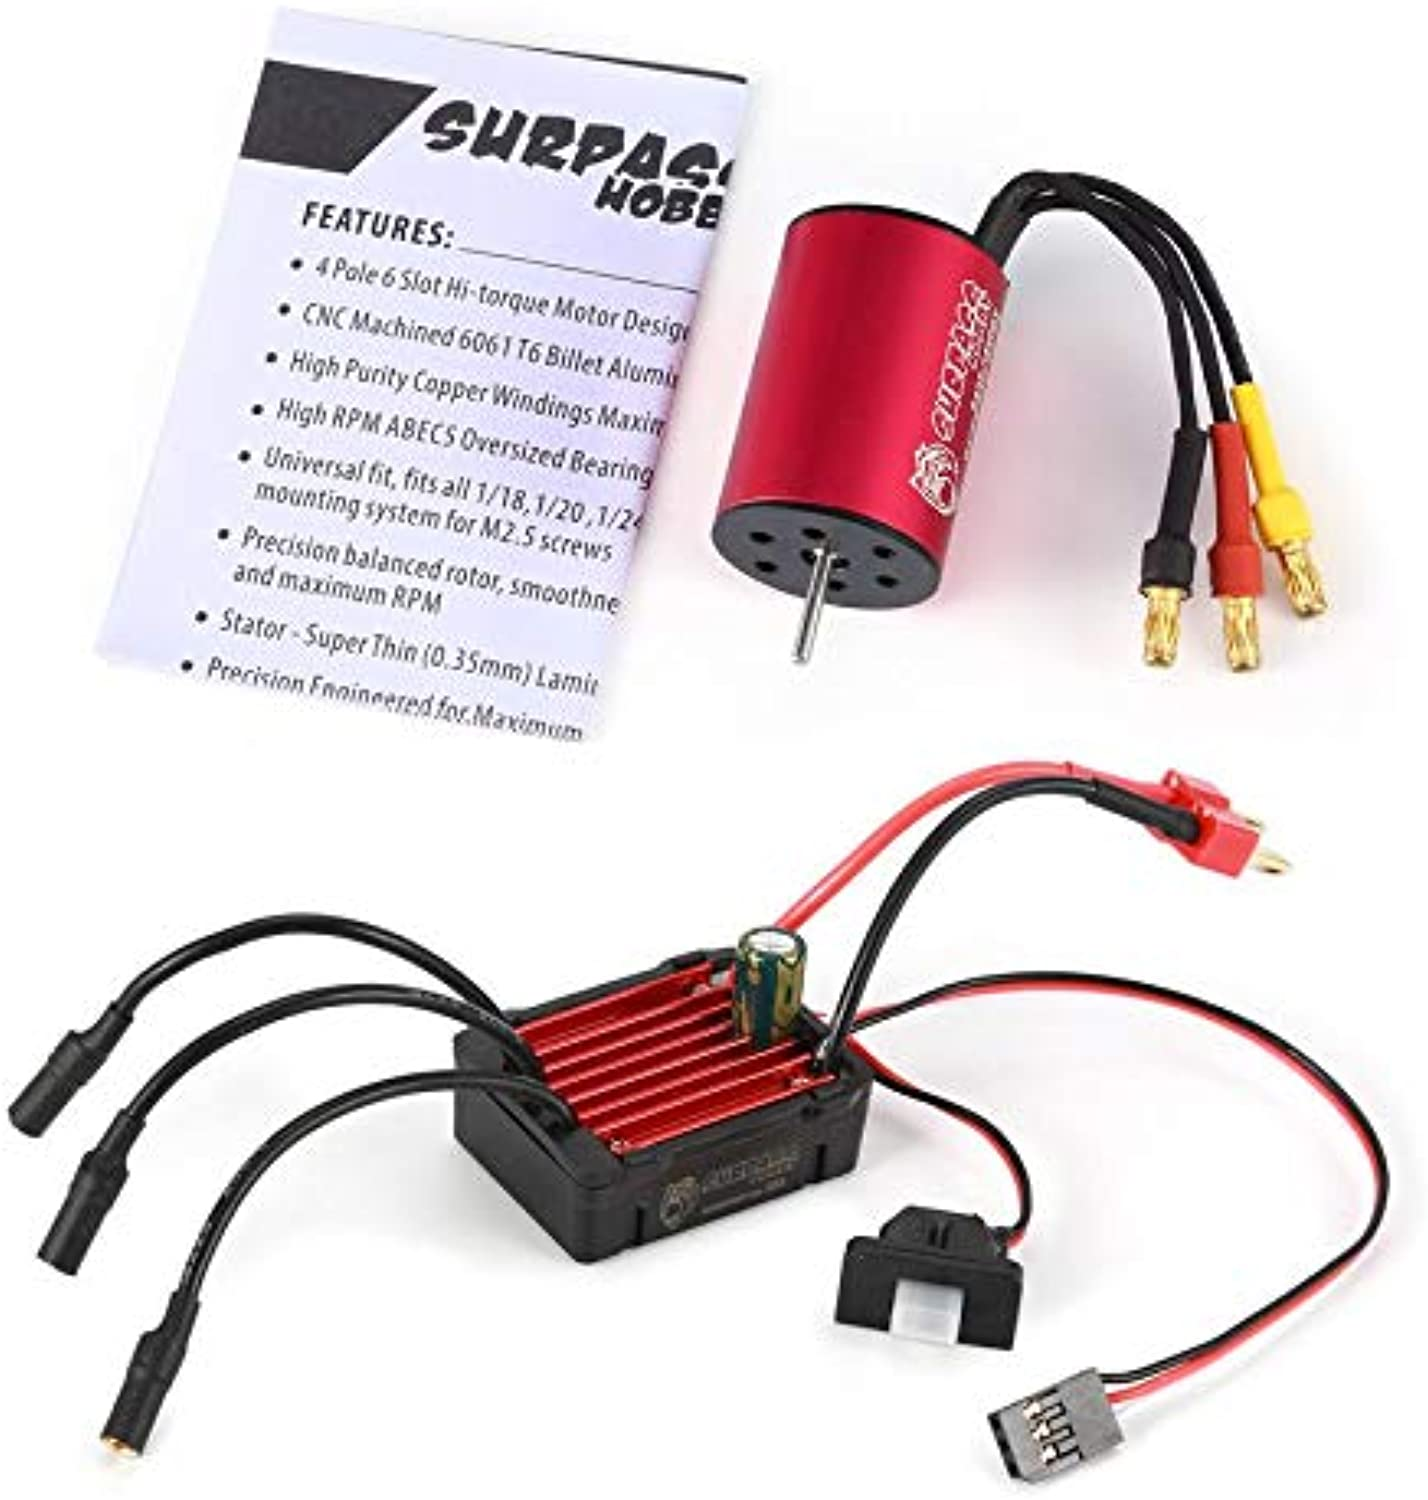 SURPASSHOBBY KK 2435 4500KV Brushless Motor with 25A Waterproof Speed Controler ESC for 2S 1 16 RC Racing Car Model